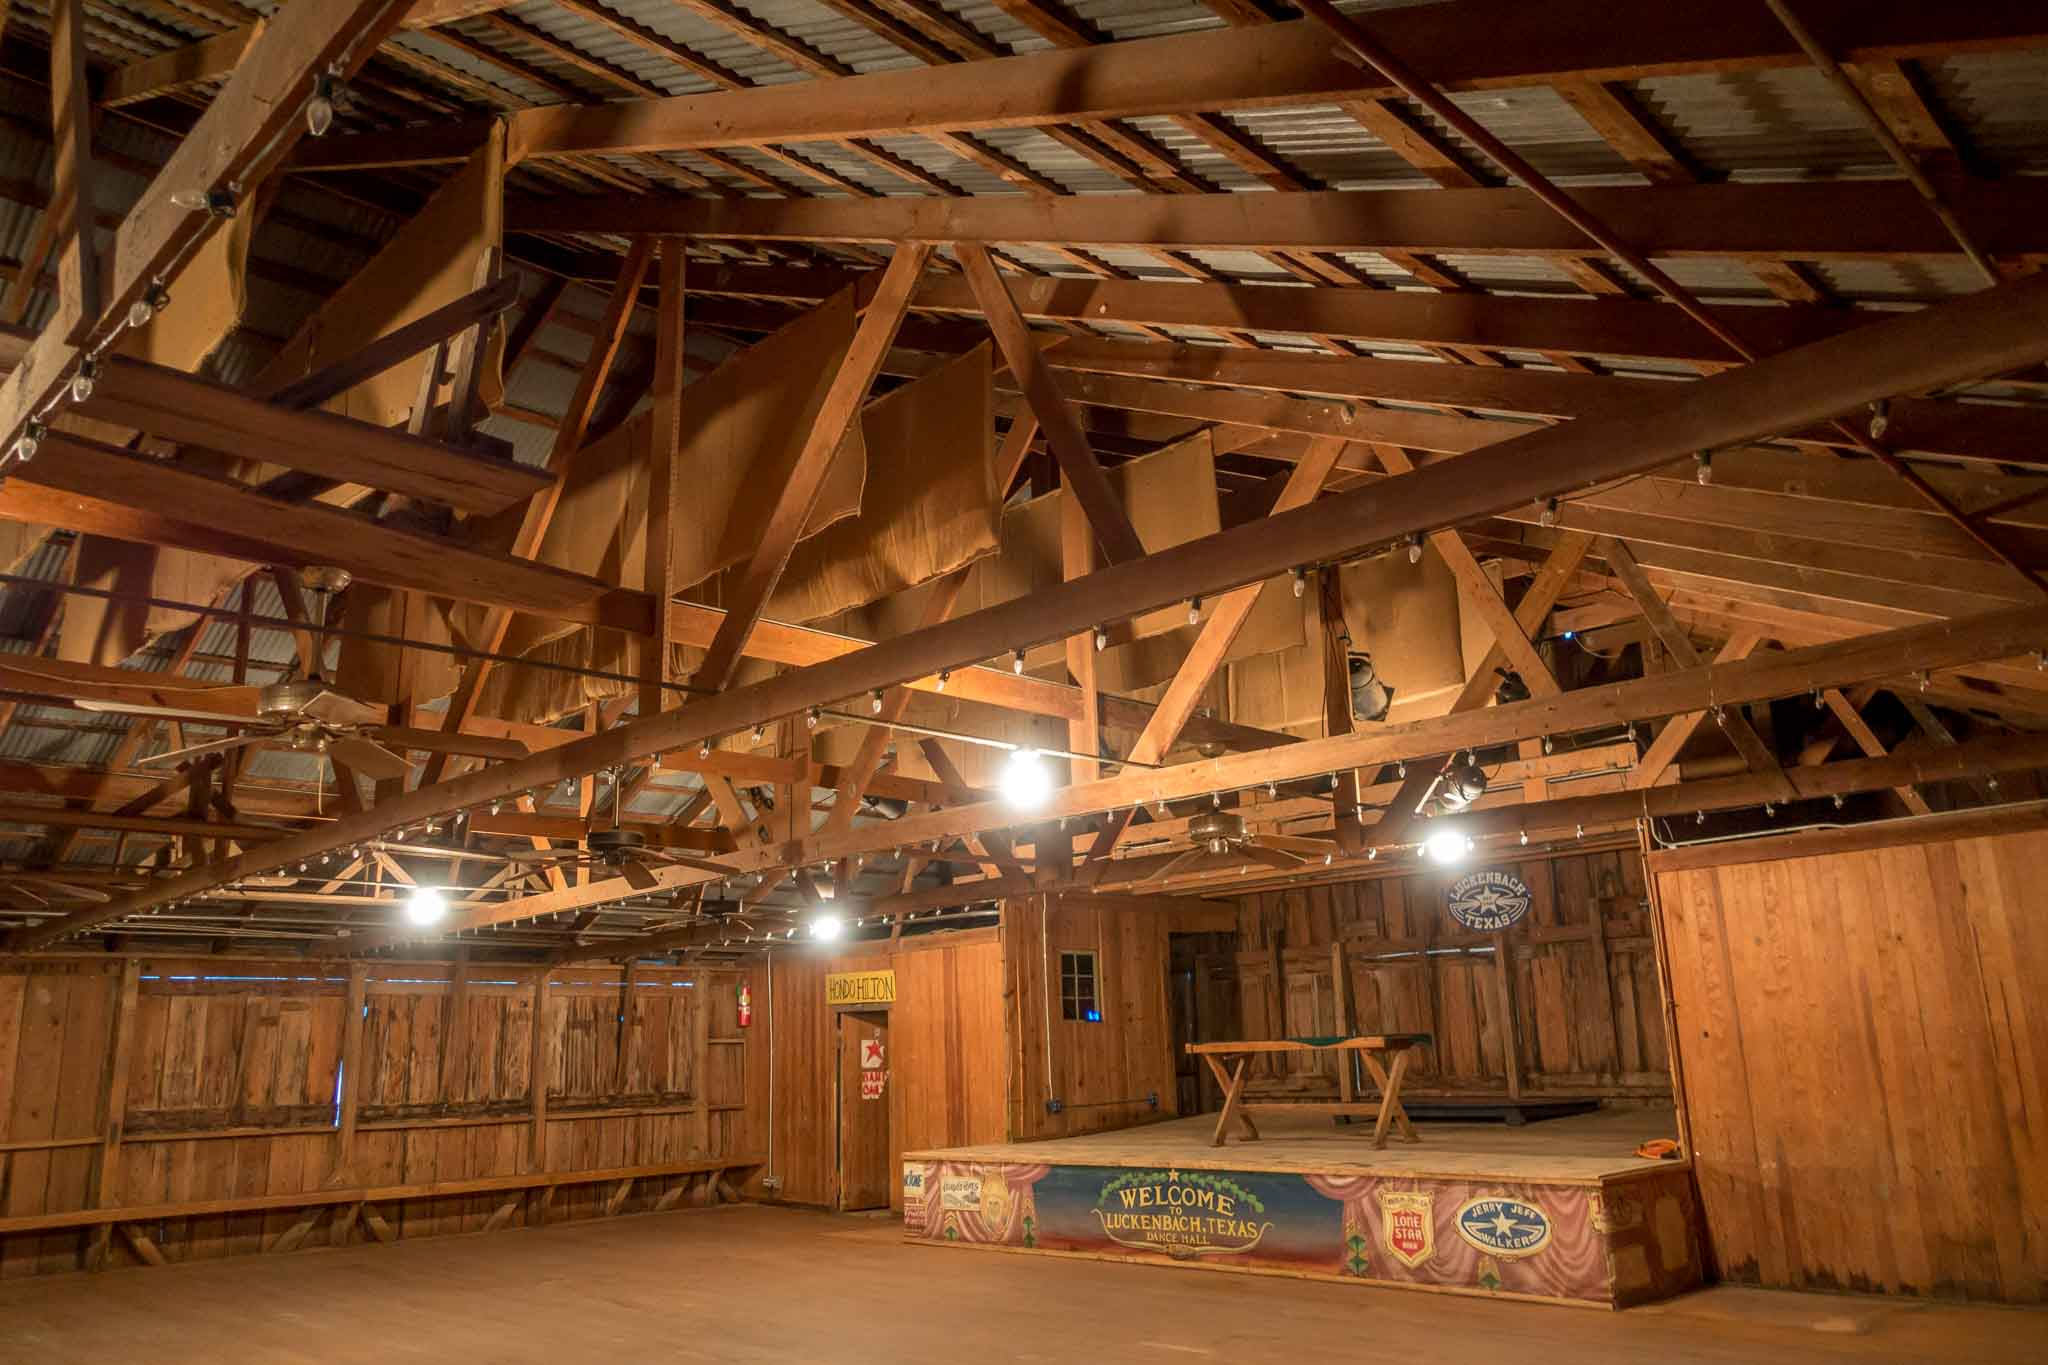 Luckenbach Texas dance hall